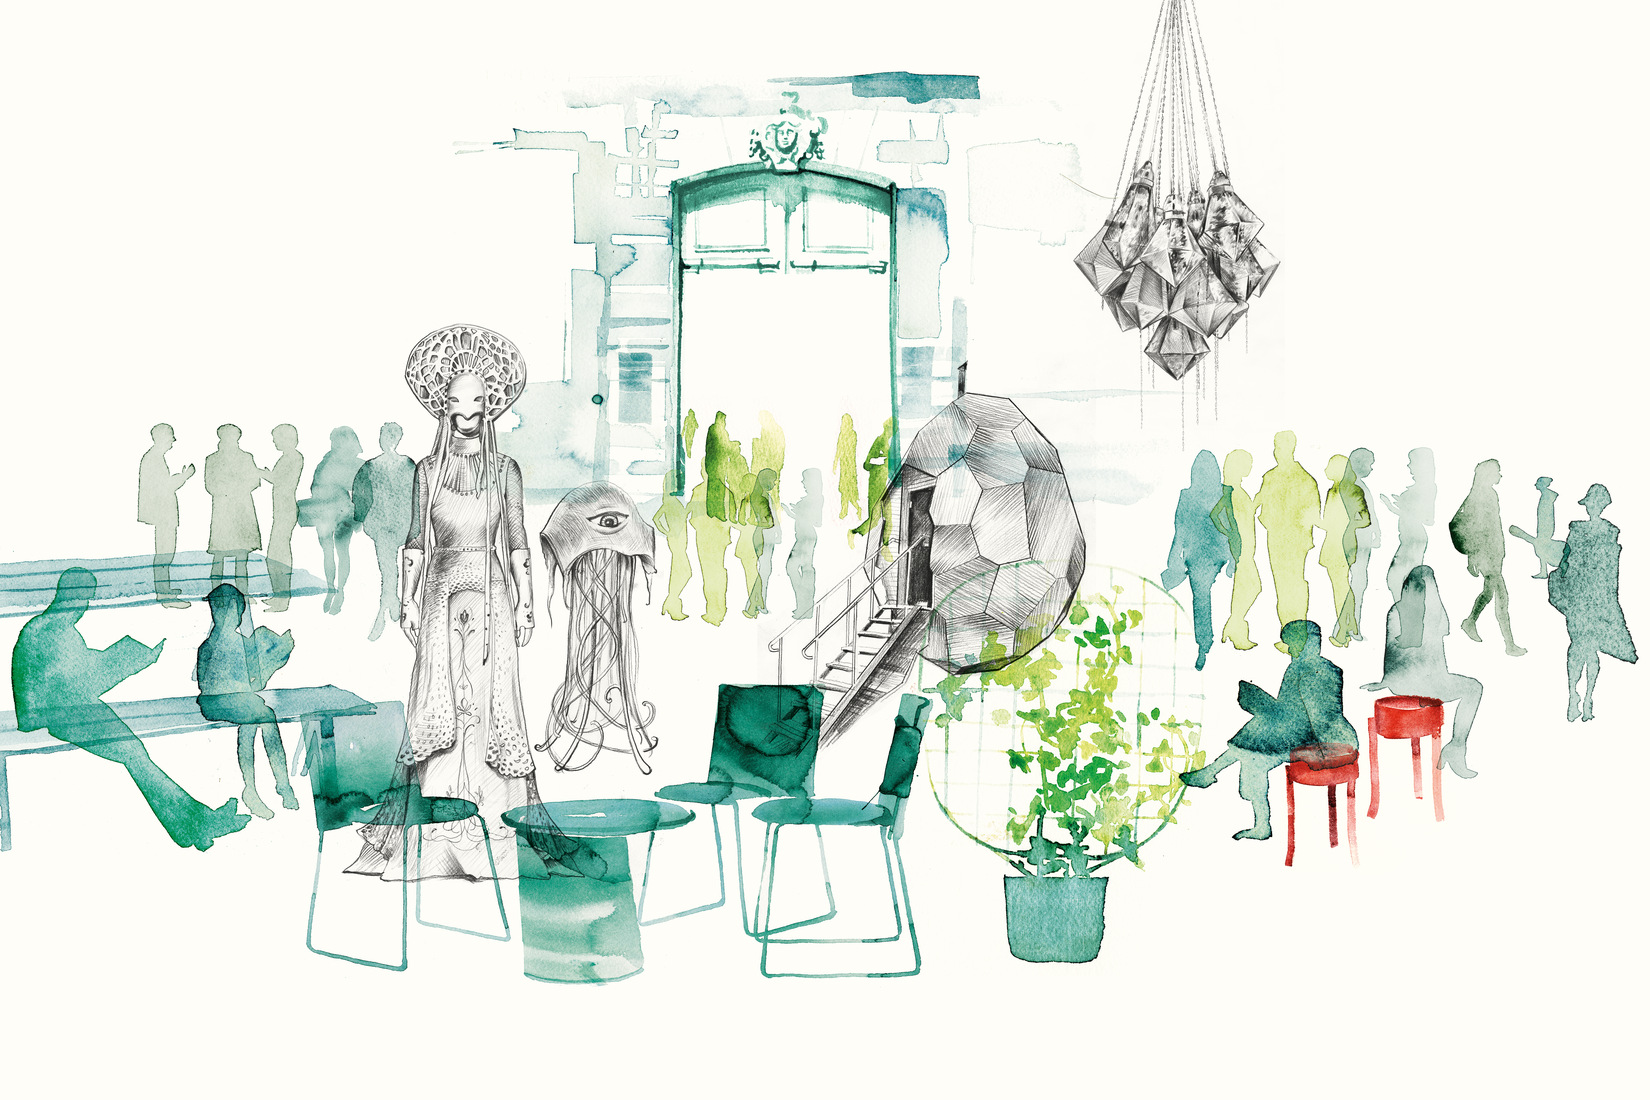 Illustration of Hôtel de Marle with design objetcs and objets from the cultural actitivies of this autumn.